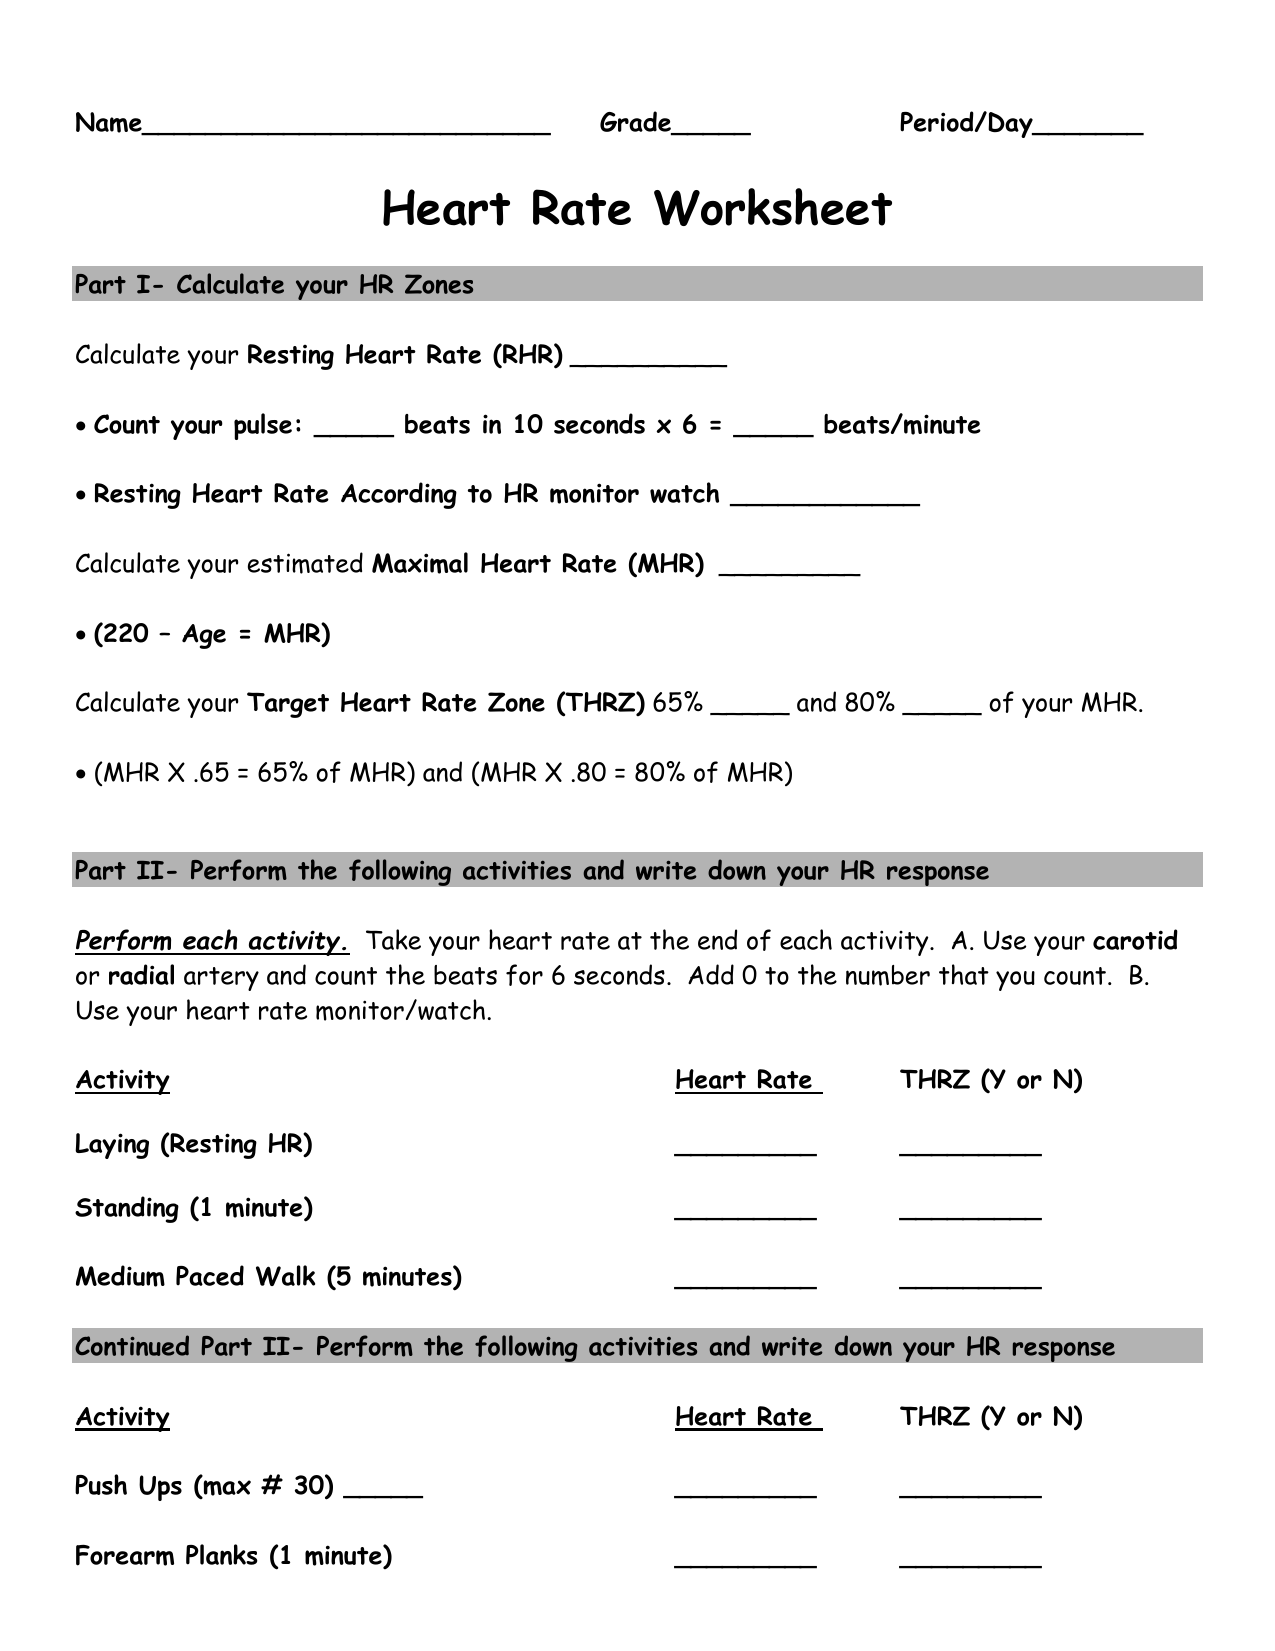 Body Worksheet For Elementary School